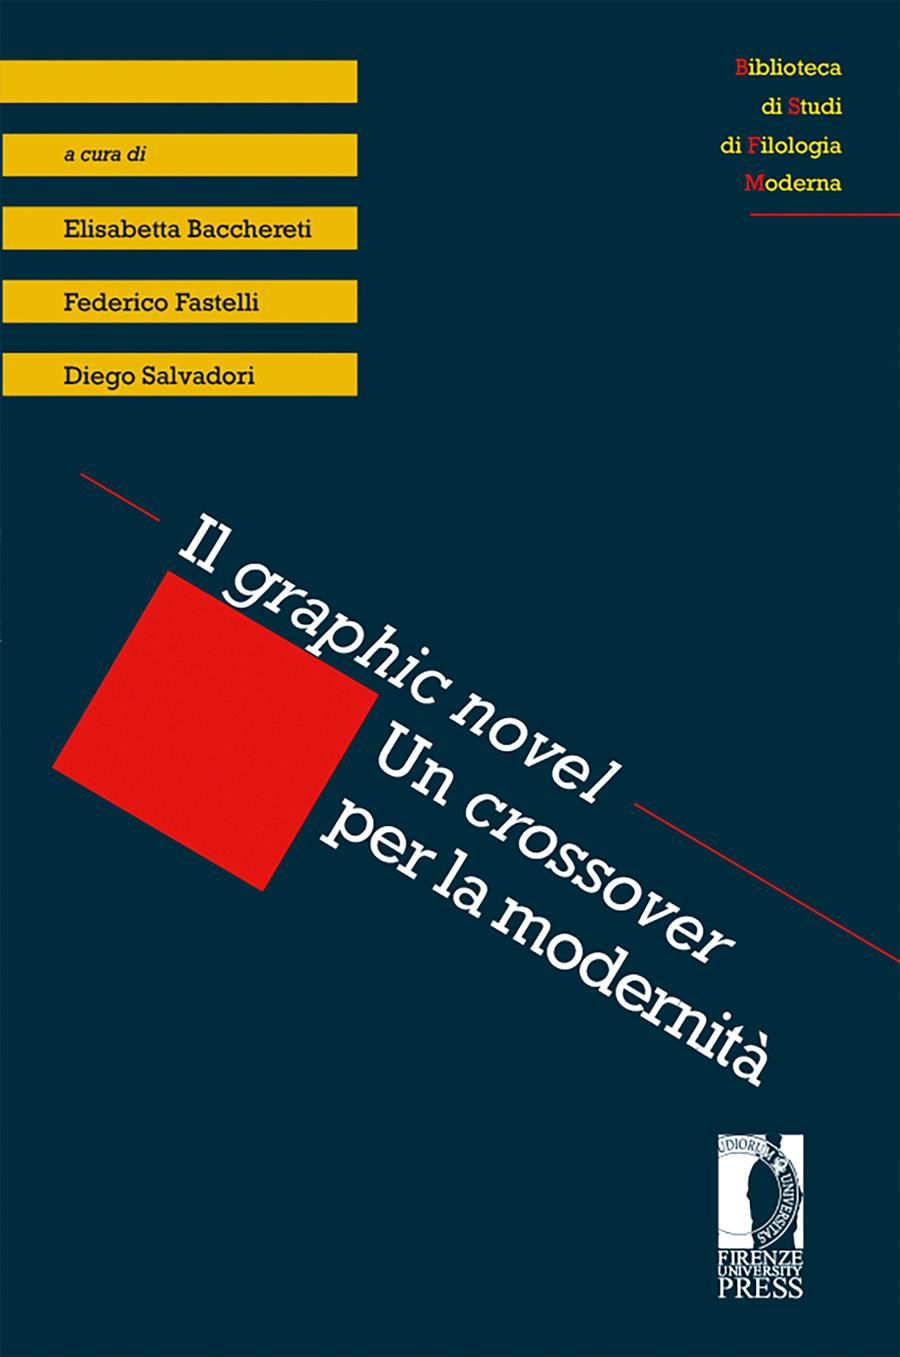 Il <i>graphic novel</i>. Un <i>crossover</i> per la modernità